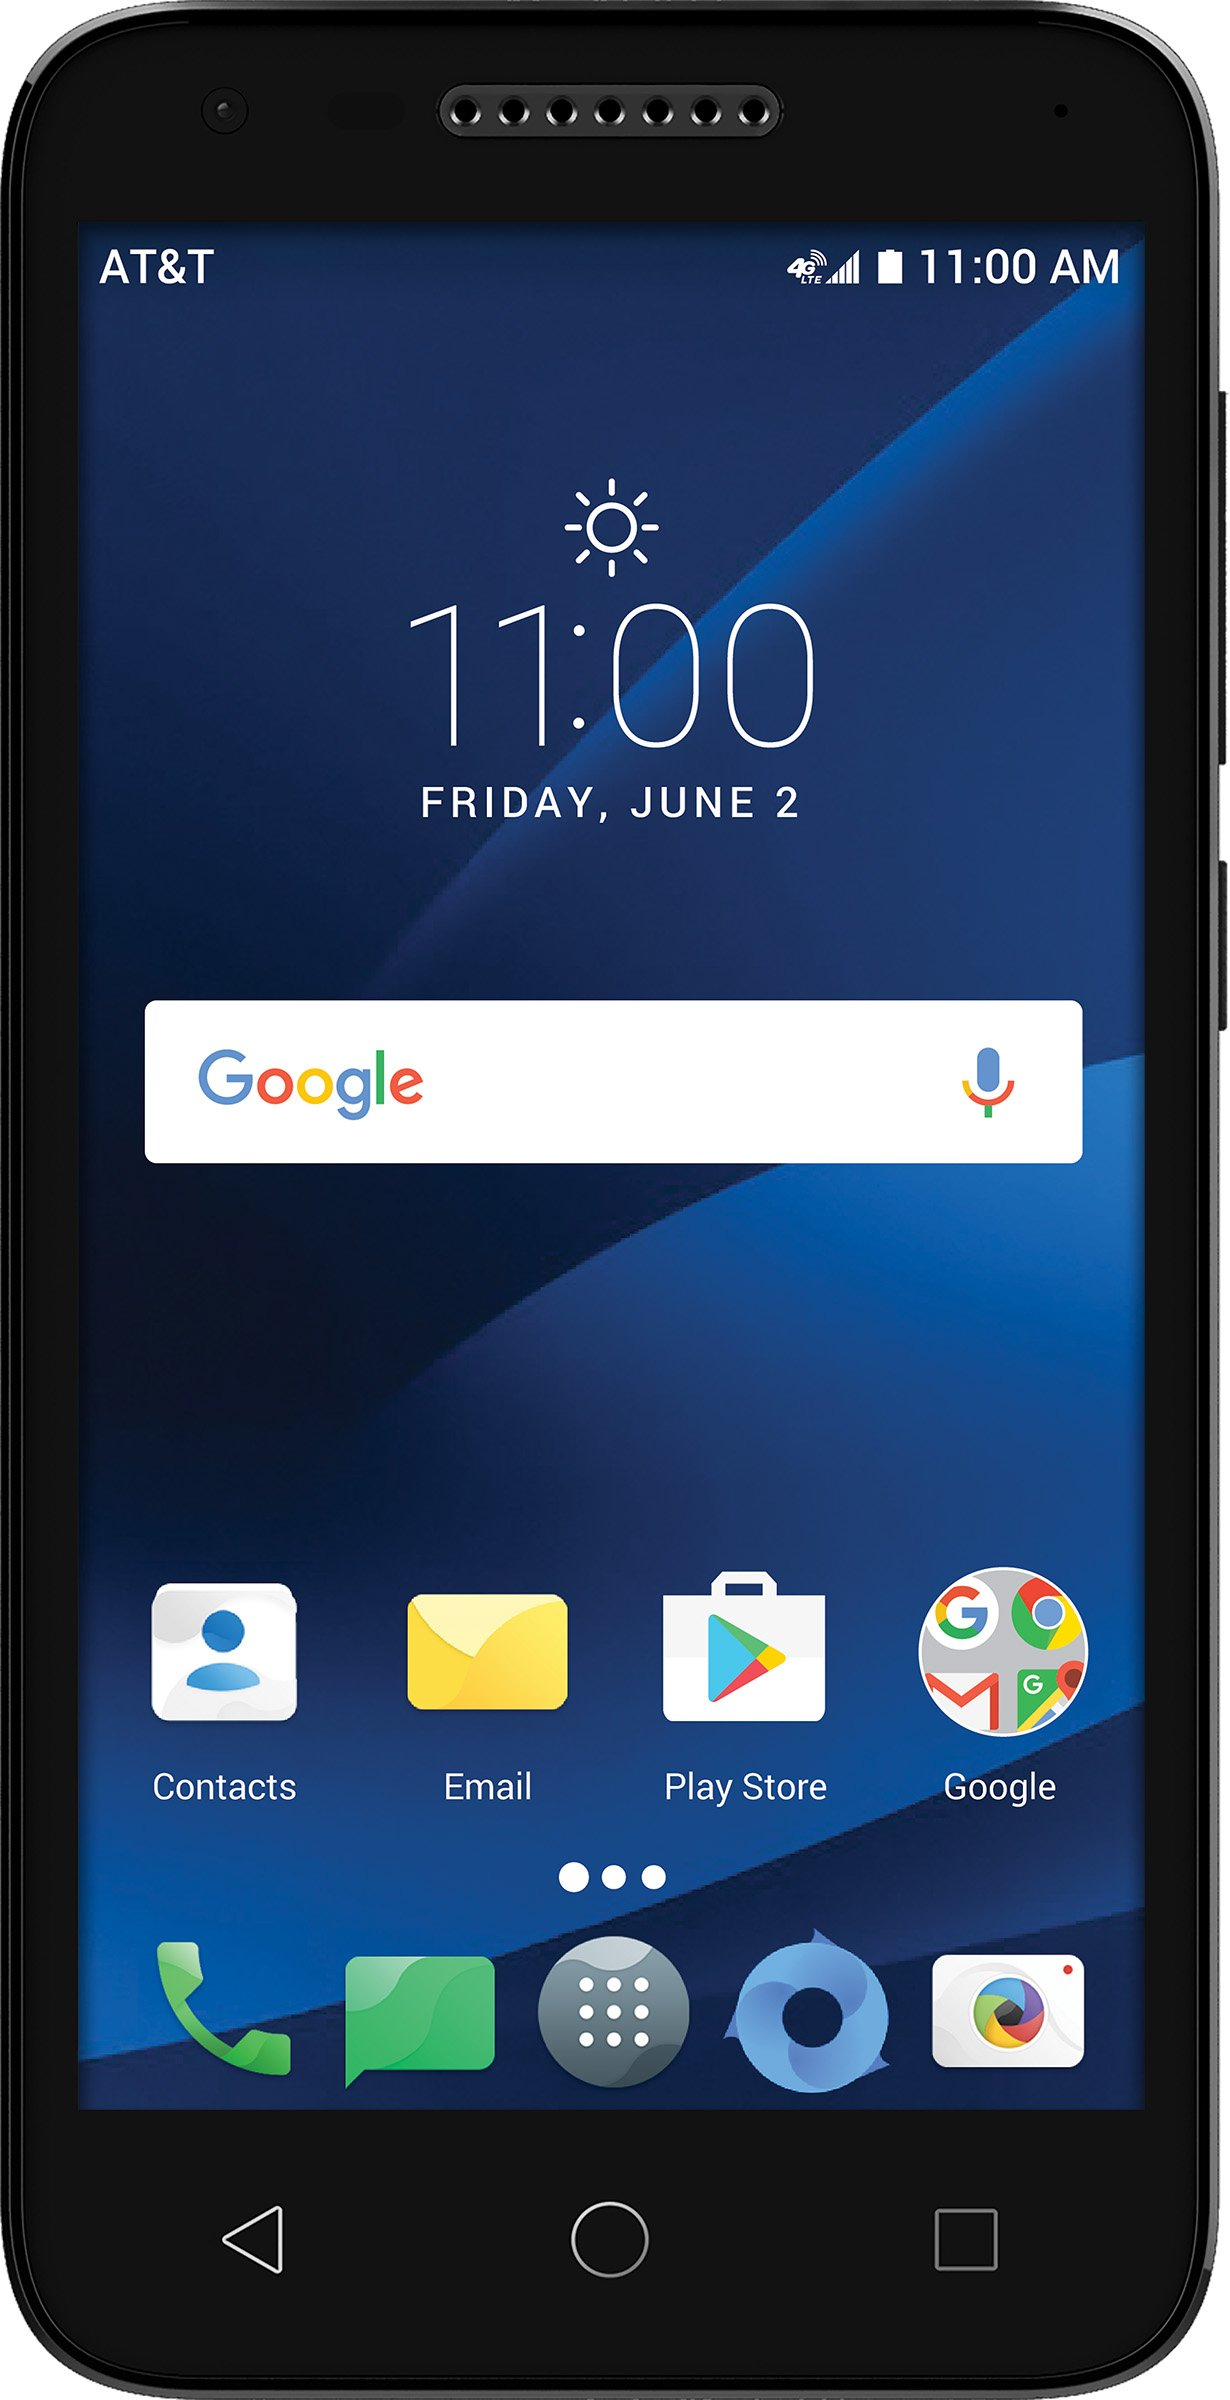 AT&T Prepaid Alcatel idealXCITE 6030B 5'' Android 7.0 Smartphone Cell Phone, 8GB, Black